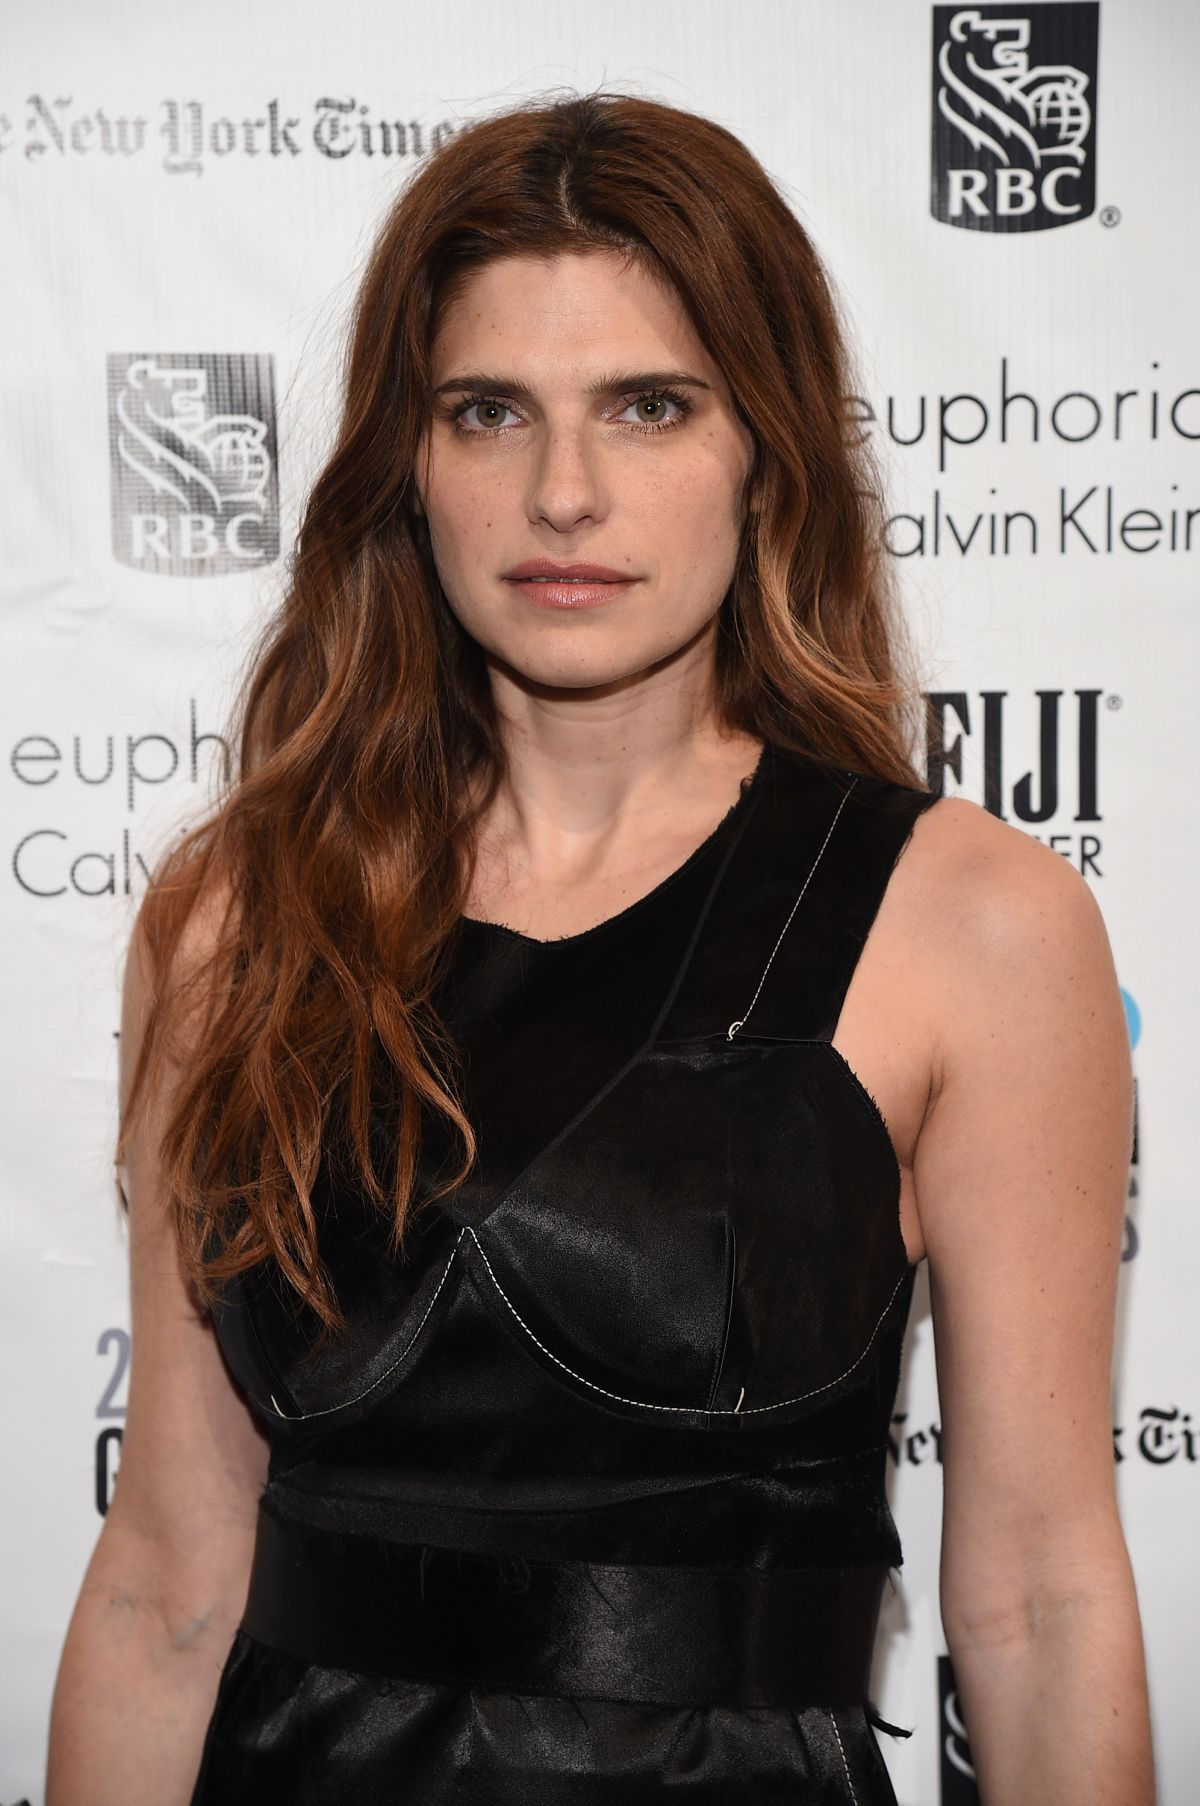 Lake bell at 25th ifp gotham independent film awards in new tork 11 30